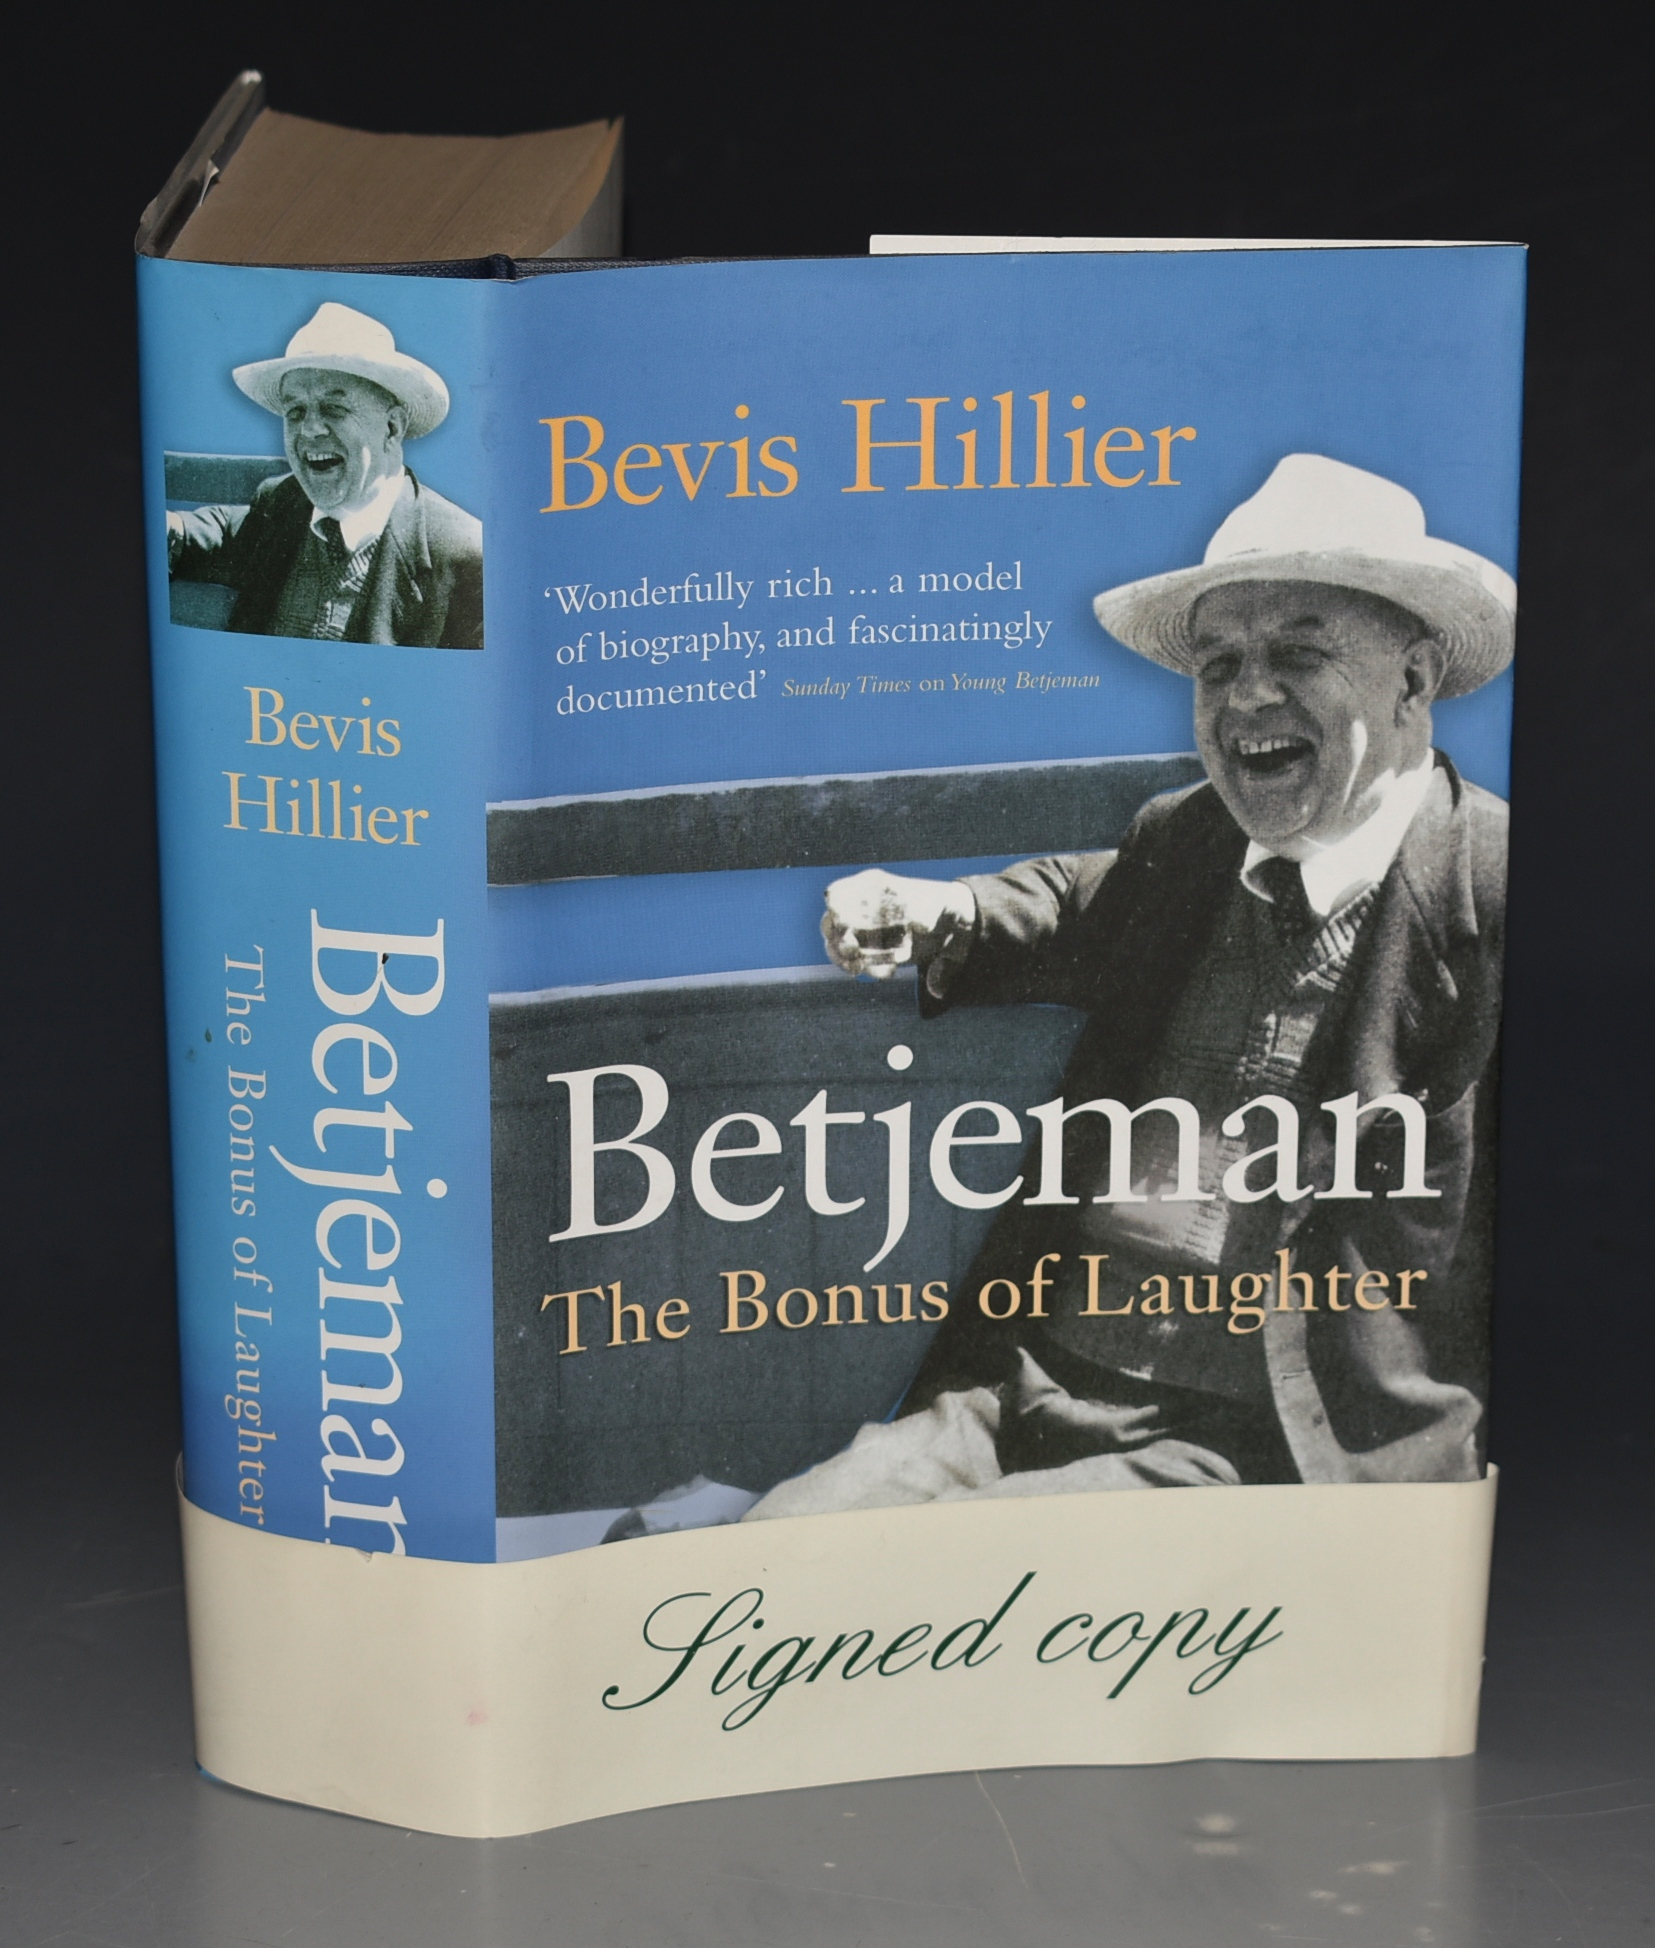 Image for Betjeman, The Bonus of Laughter. SIGNED COPY.